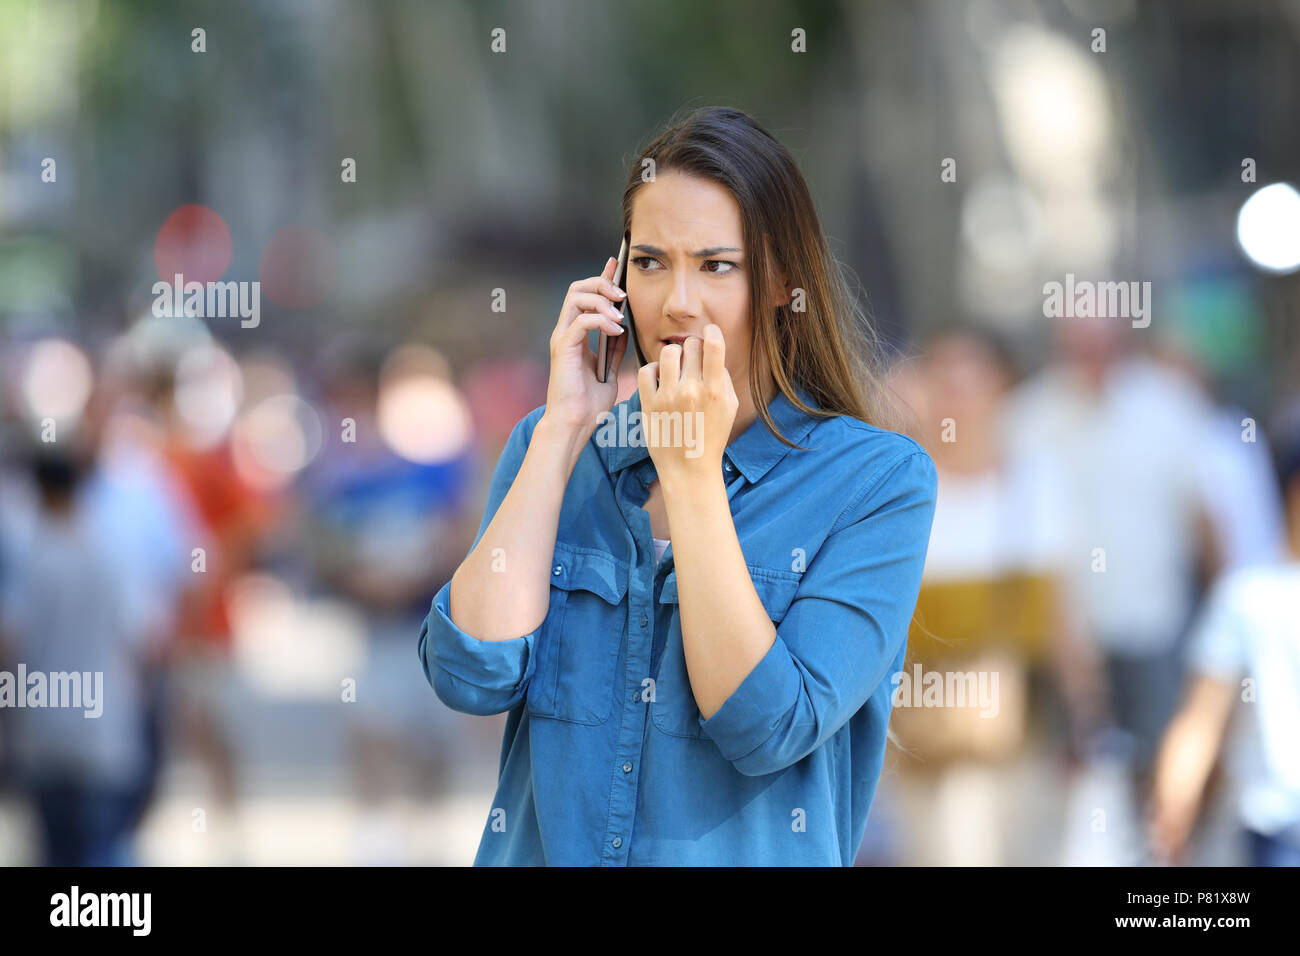 Nervous woman biting nails while is talking on phone on the street - Stock Image